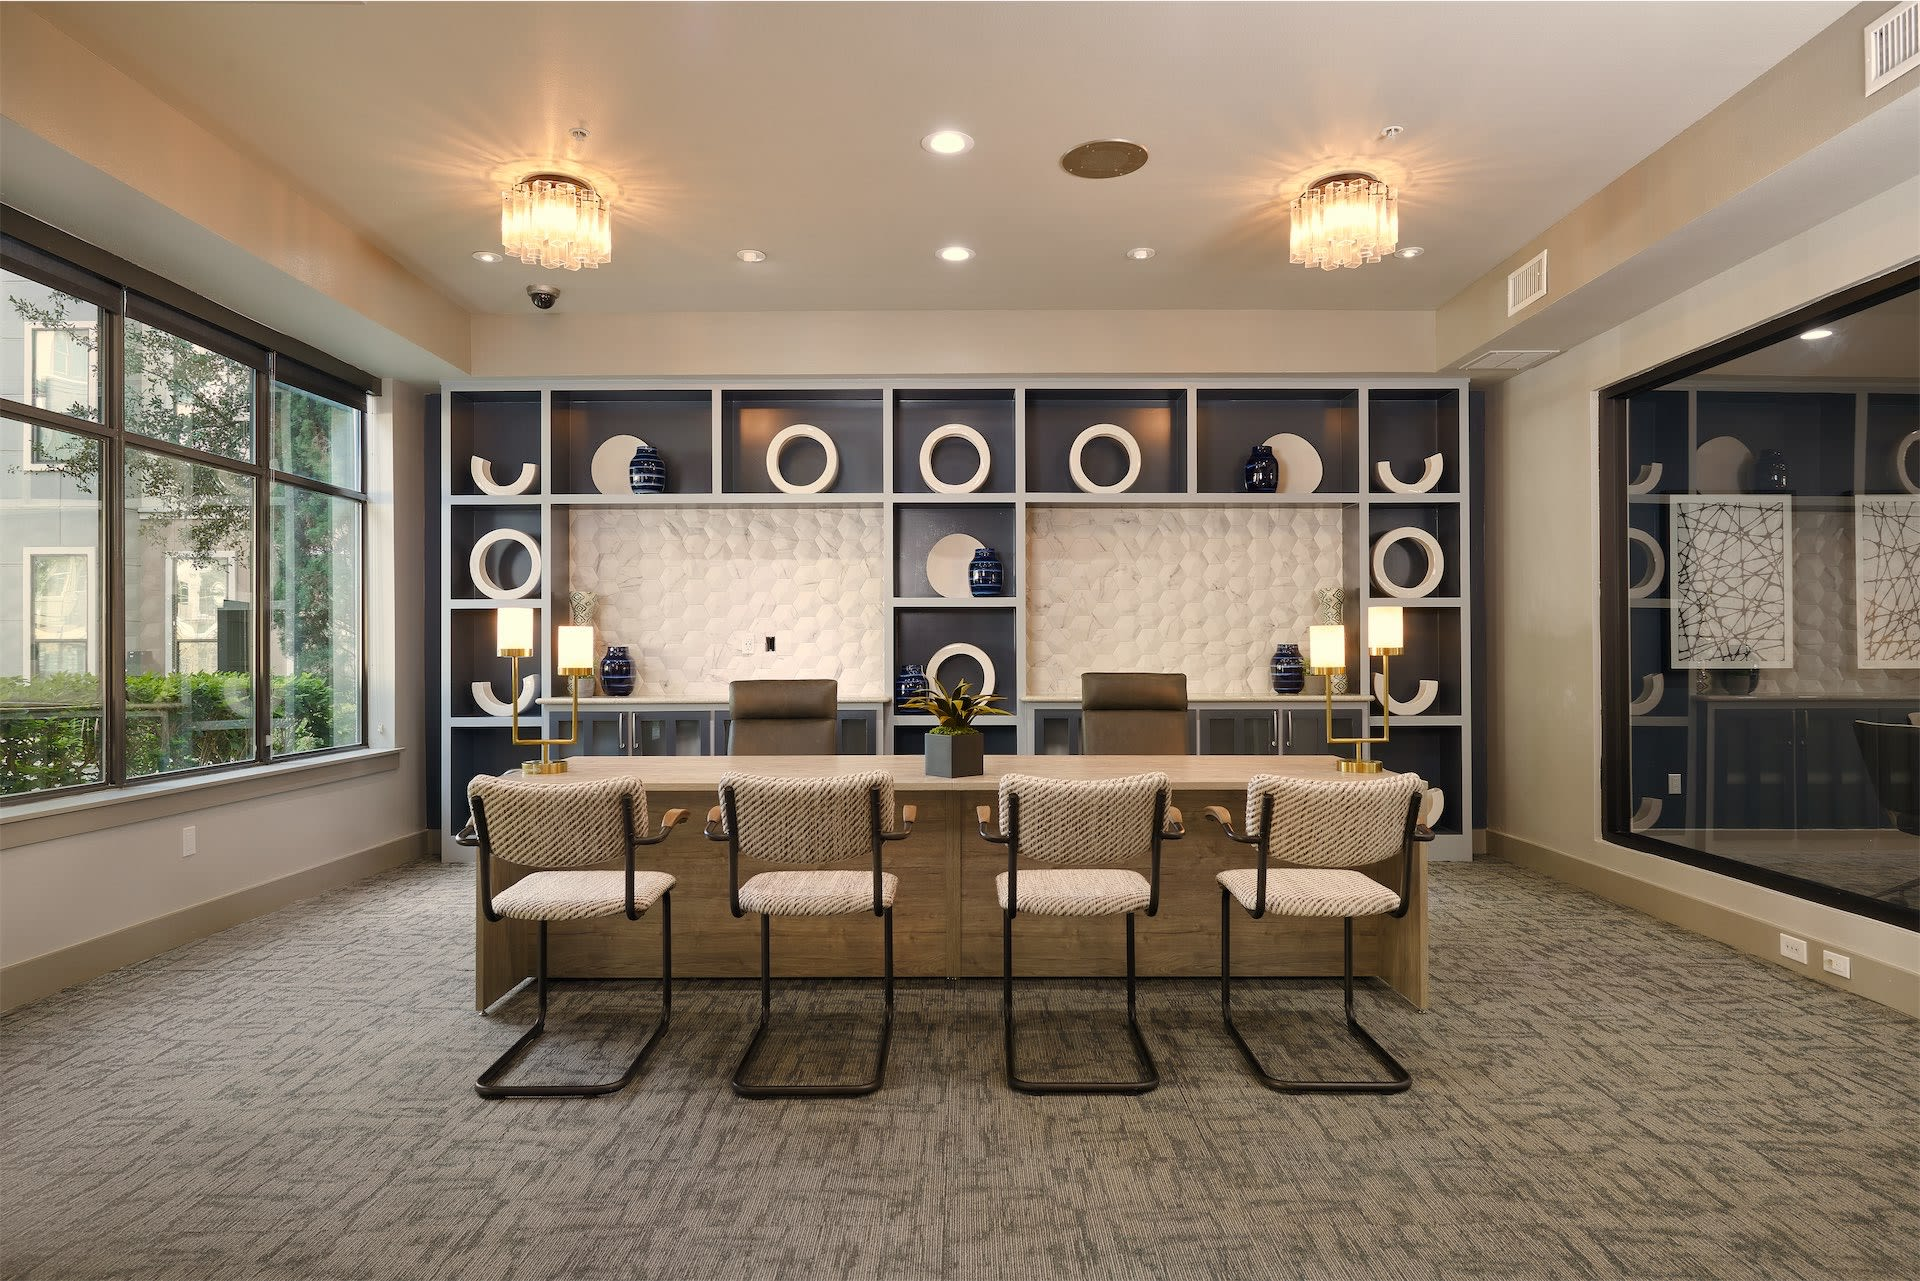 meeting area at Seville Uptown in Dallas, Texas